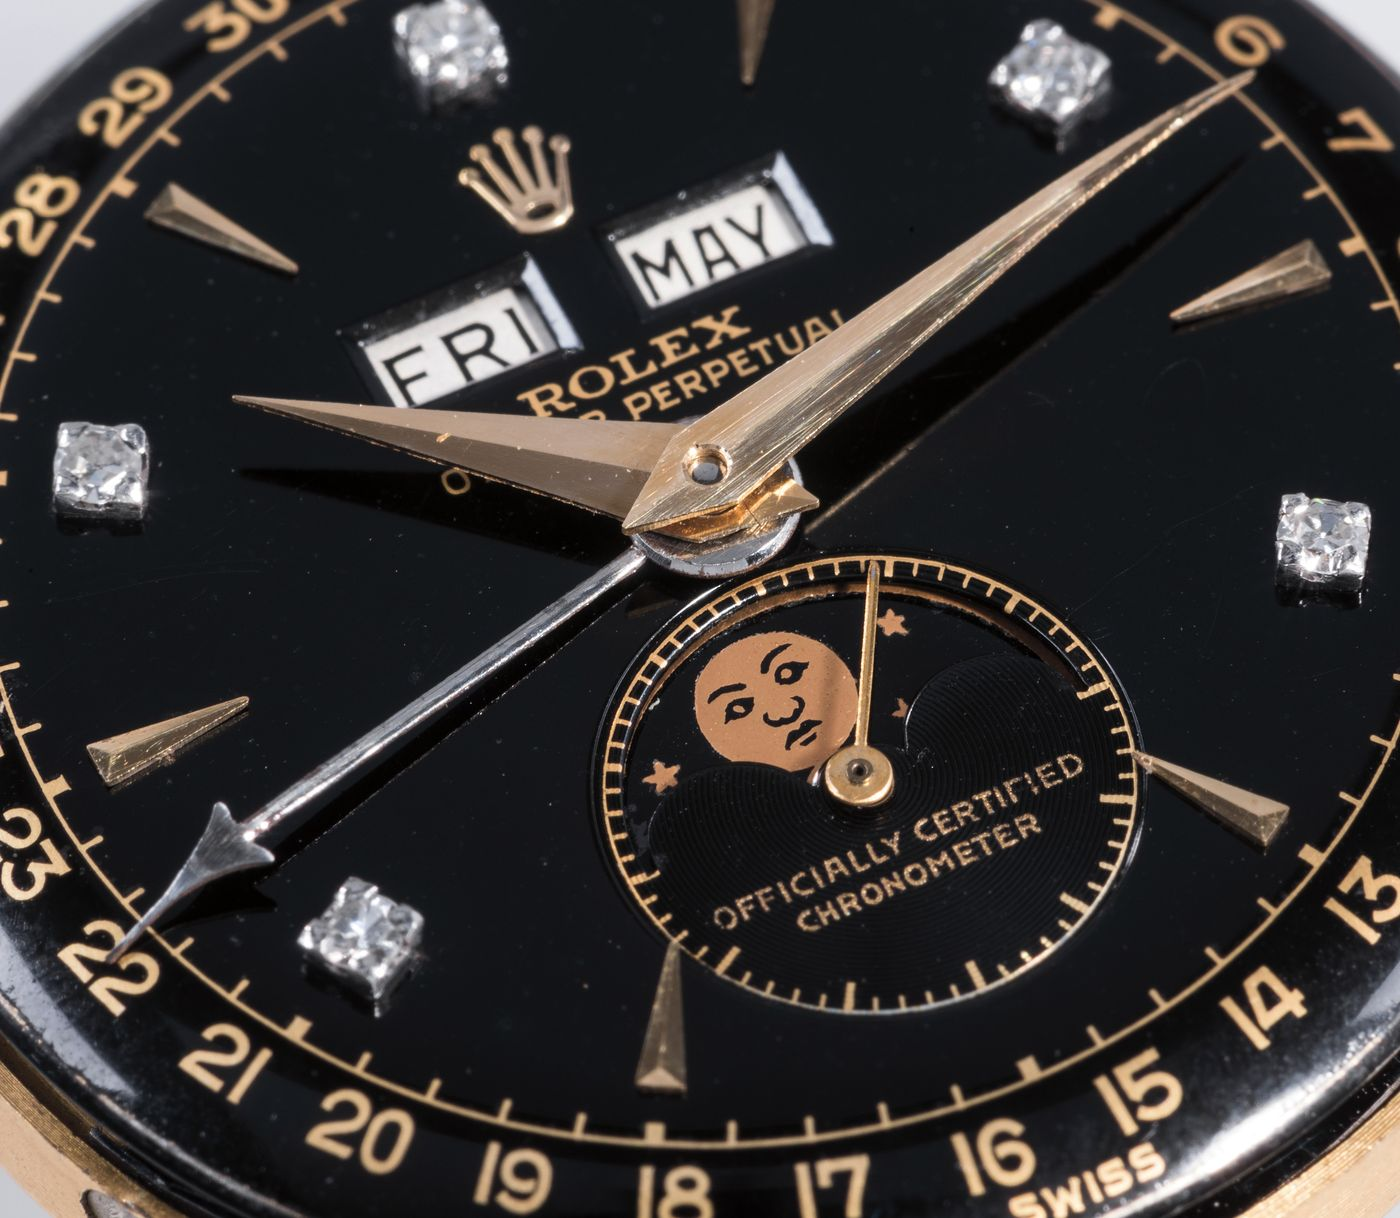 Returning to auction this May: A world-famous, diamond-encrusted Rolex 6062 was commissioned directly by the last Emperor of Vietnam, known as the Bao Dai (or Keeper of Greatness), in 1954 Geneva.